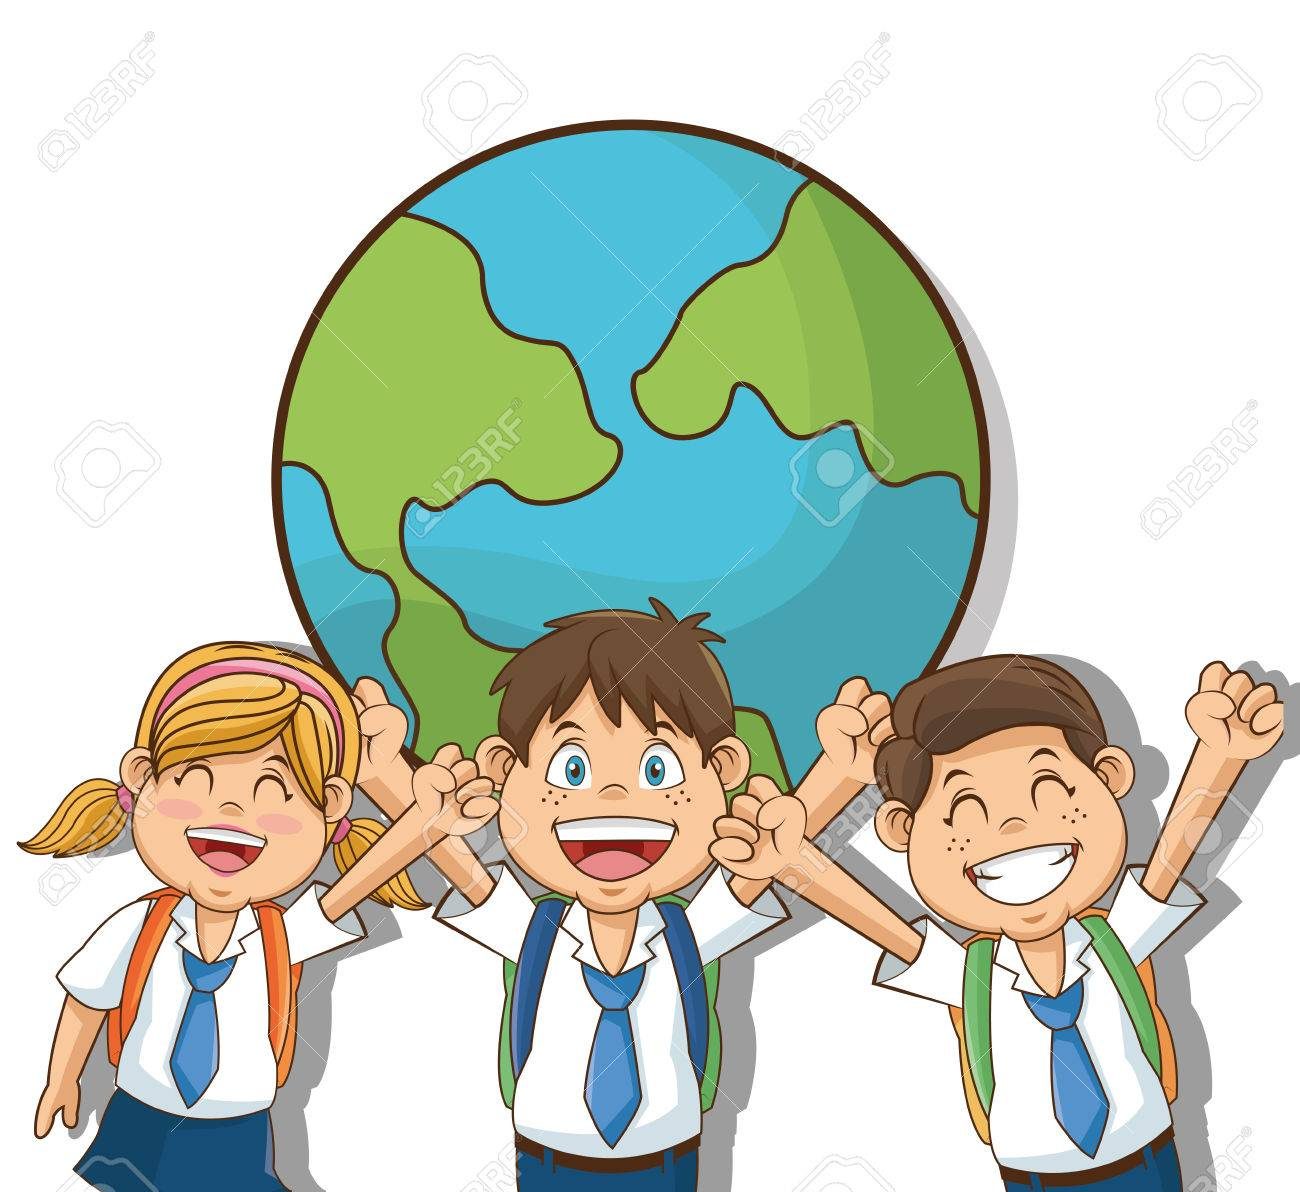 Boys And Girl Cartoons Students Back To School Education And Royalty Free Cliparts Vectors And Stock Illustration Image 63236557